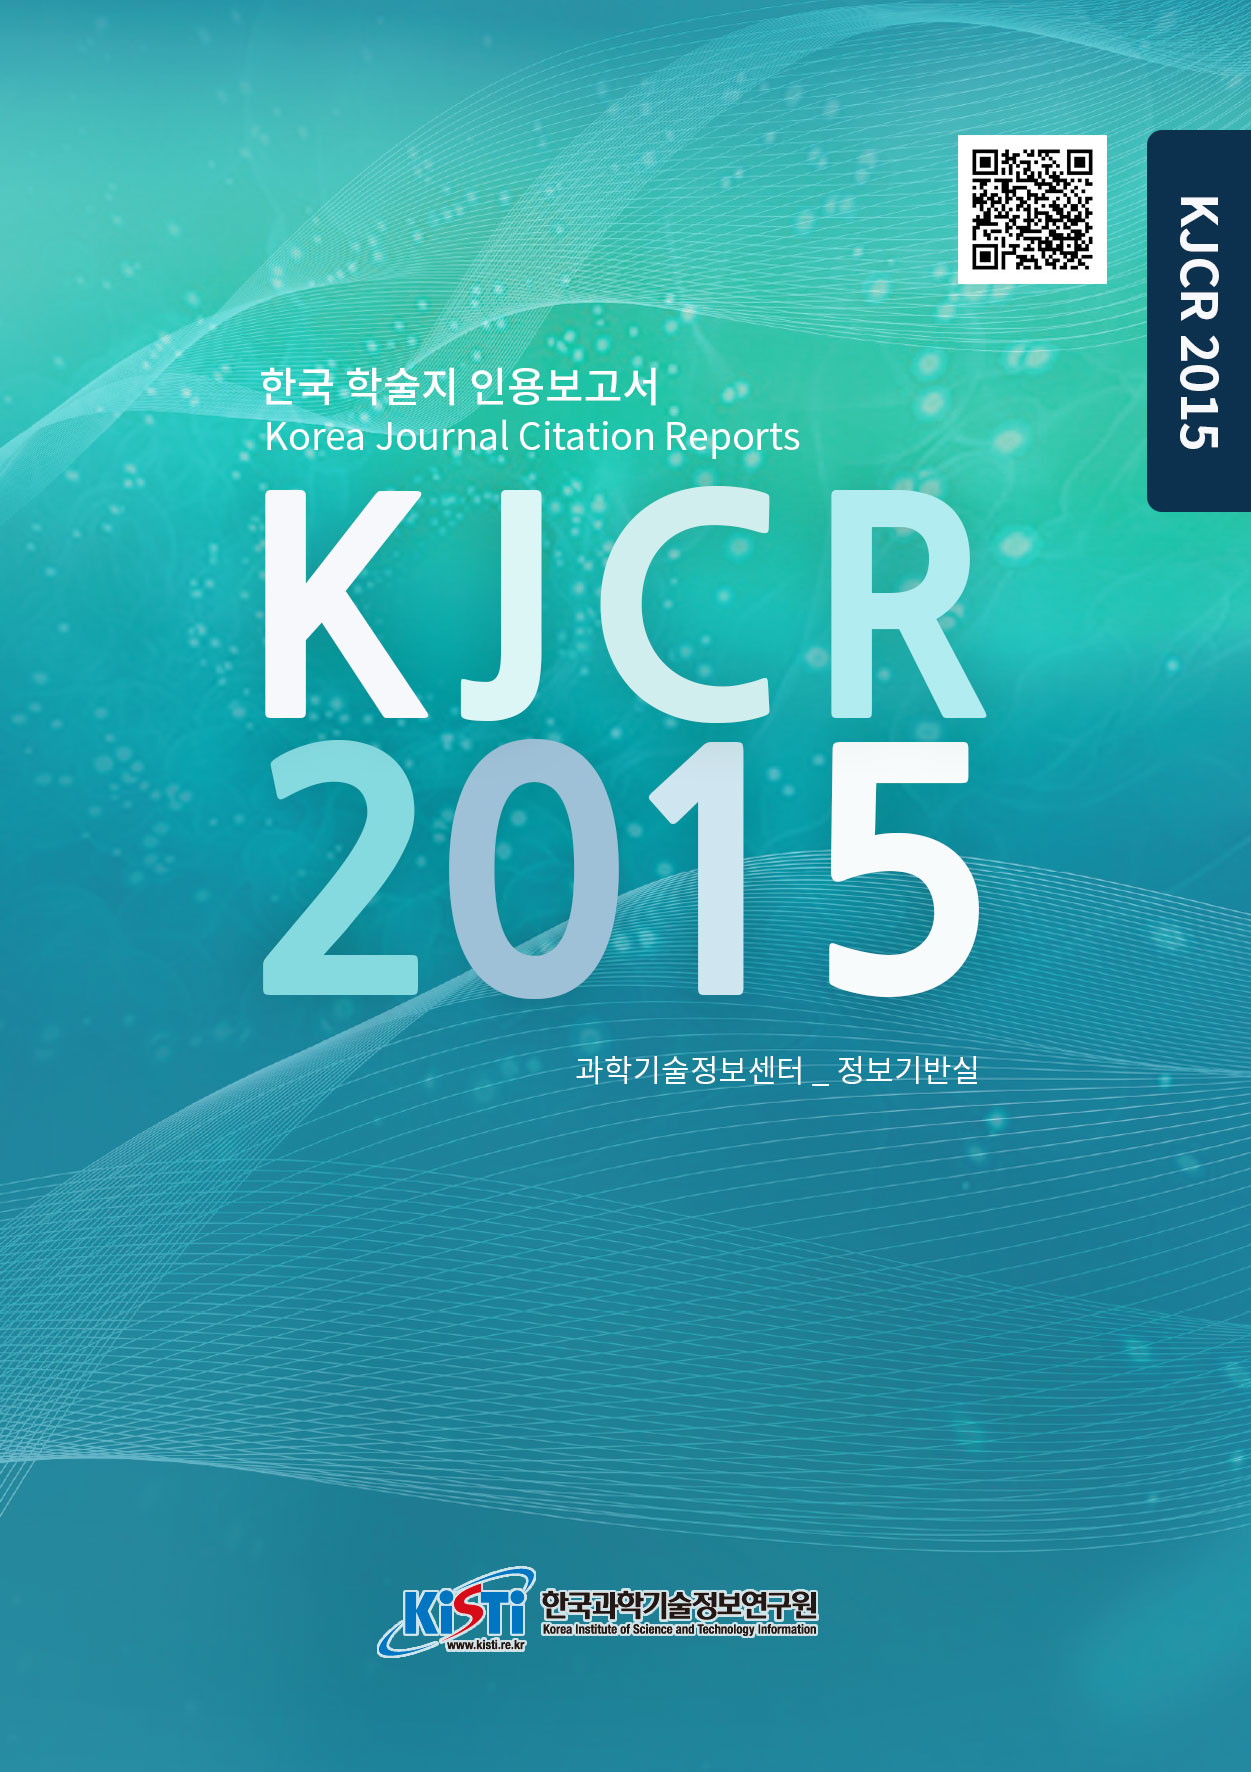 한국 학술지 인용보고서 - KJCR 2015 (Korea Journal Citation Reports)